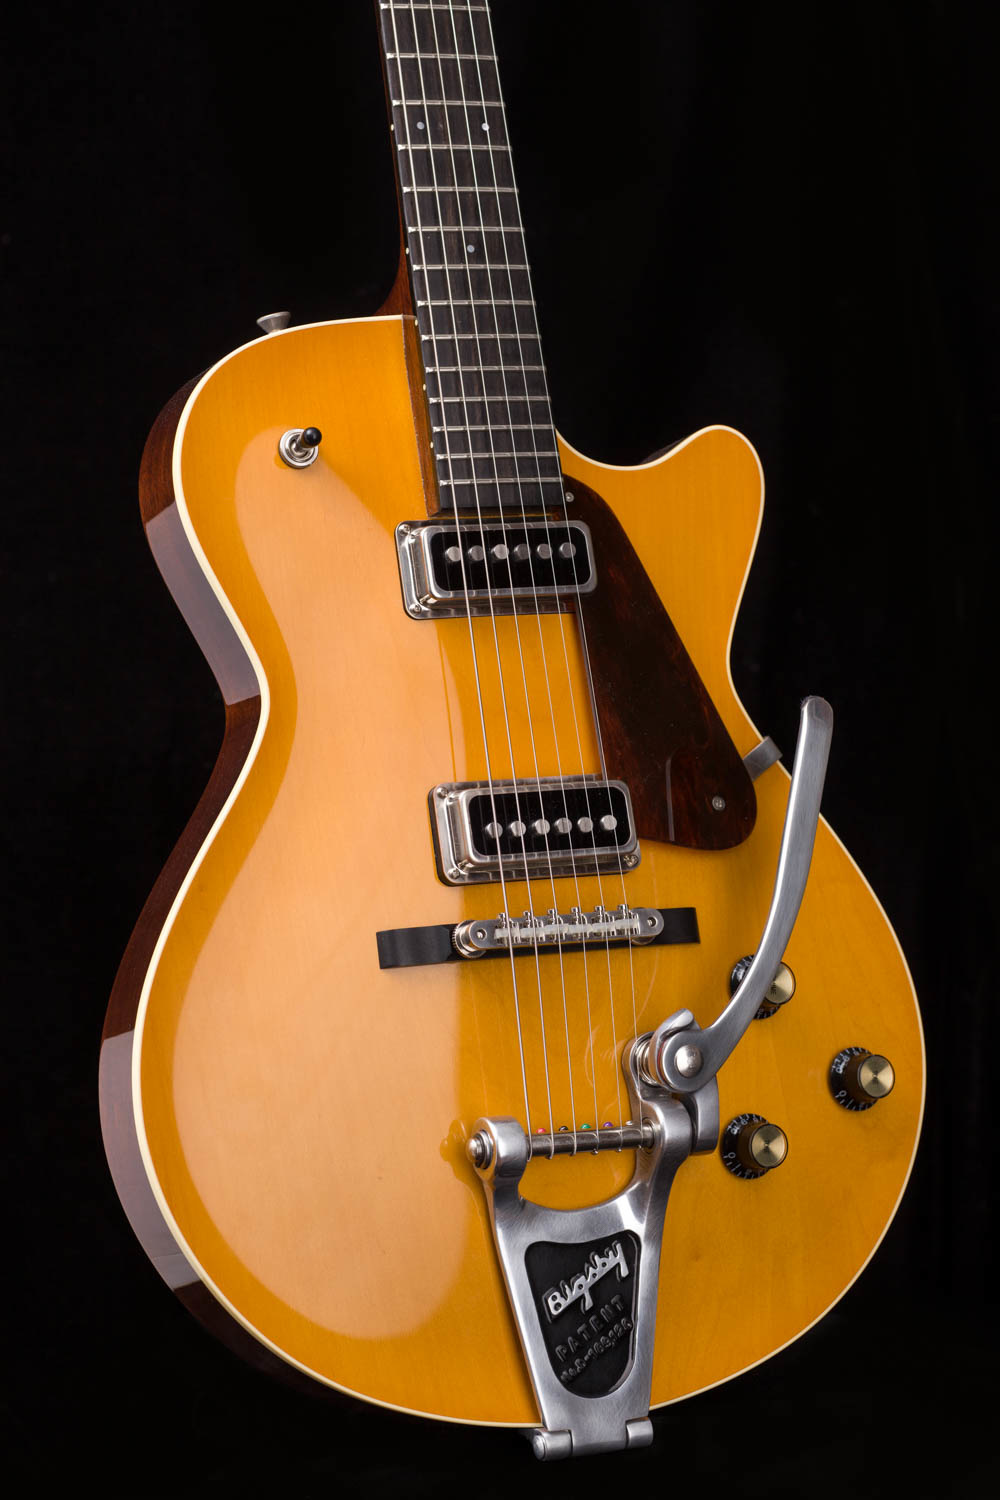 The new Collings Julian Lage ELECTRIC!